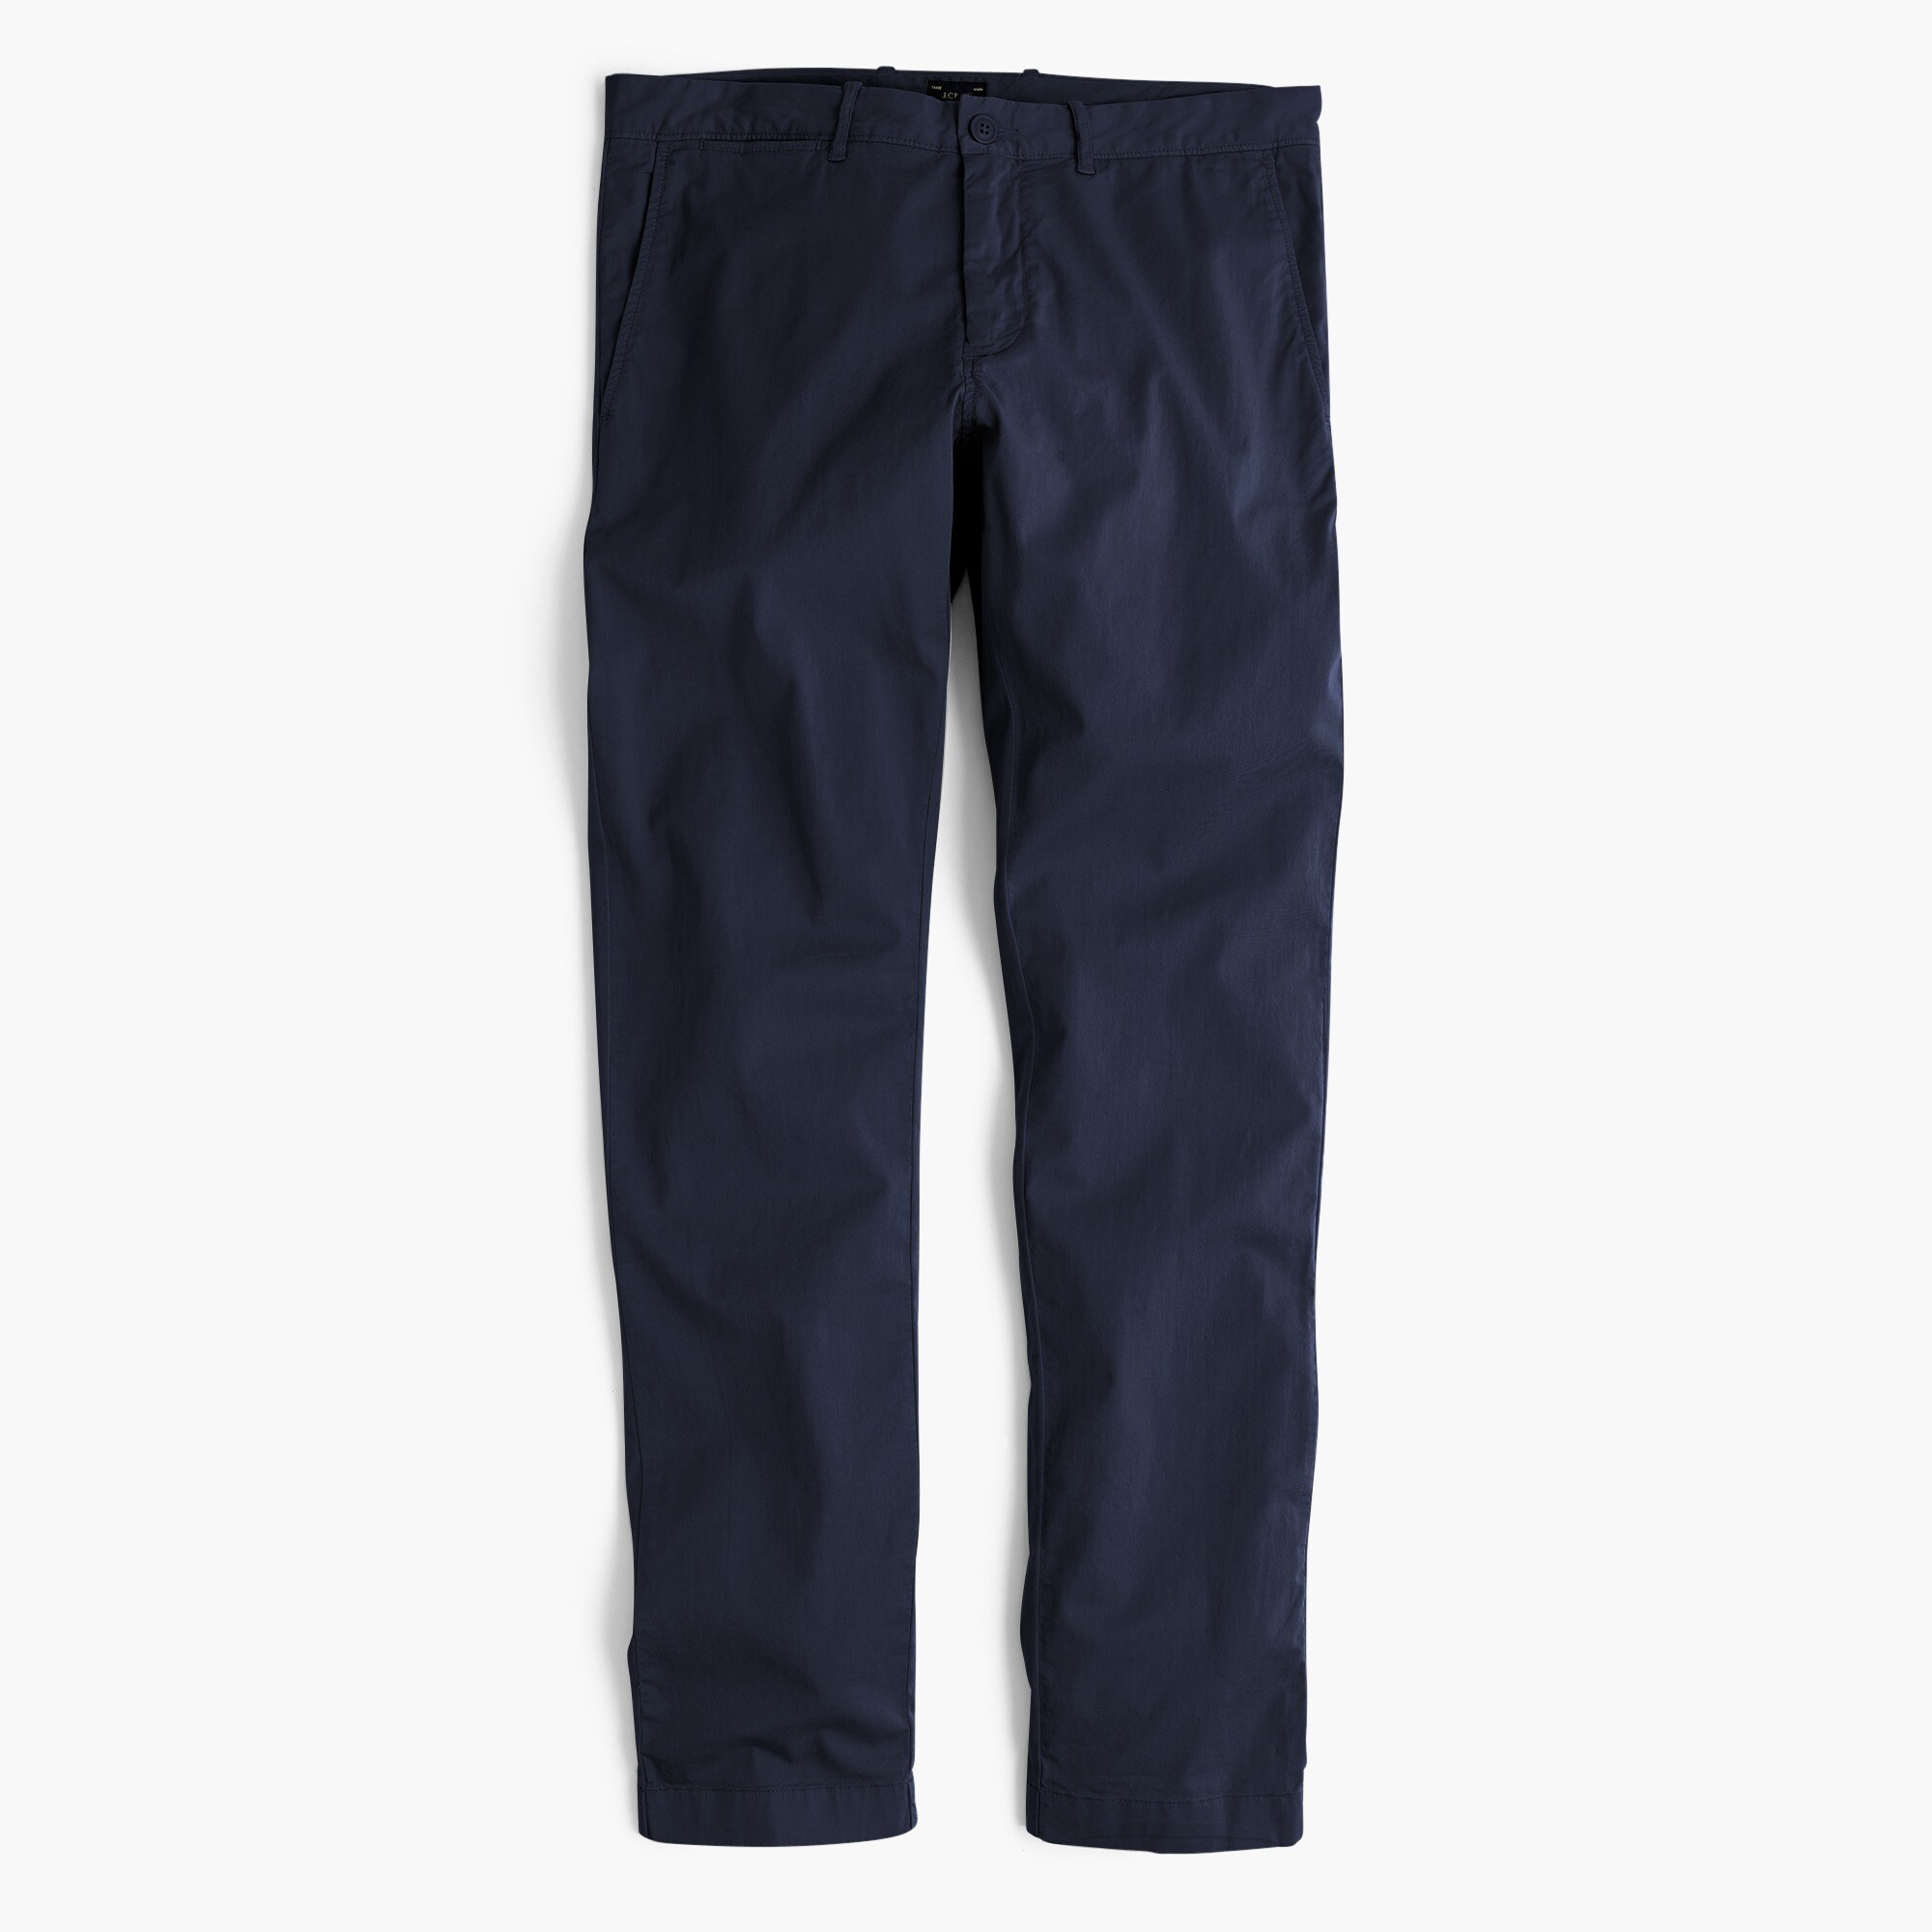 484 Slim-fit lightweight garment-dyed stretch chino